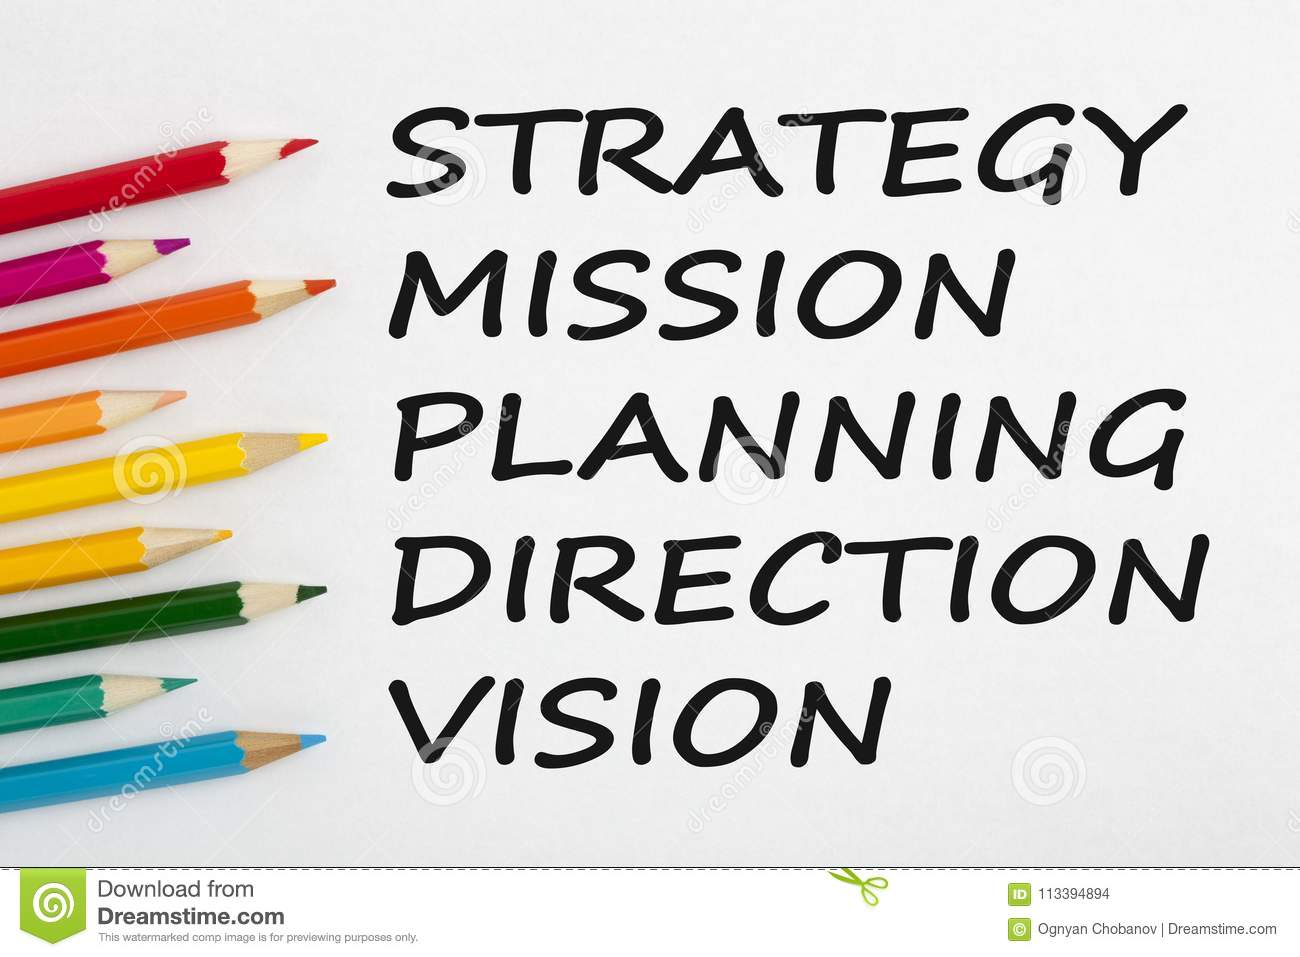 Strategy, Mission, Planning, Direction and Vision Concept